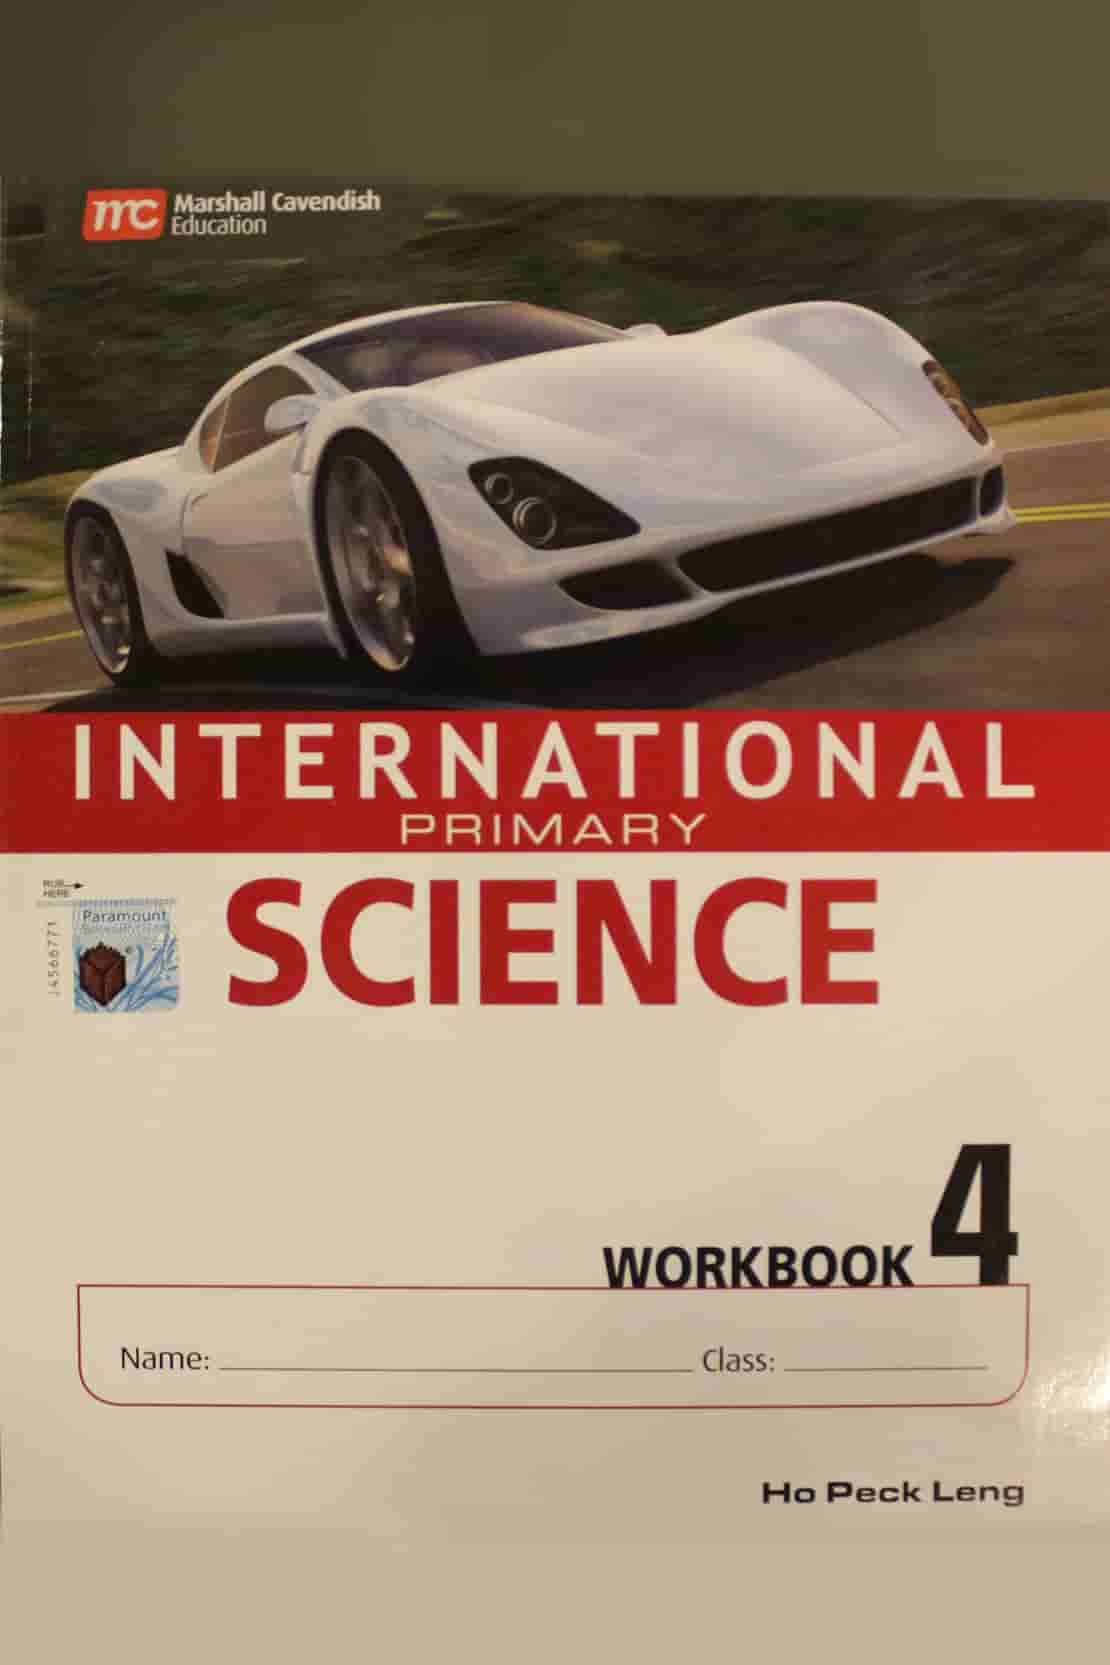 INTERNATIONAL PRIMARY SCIENCE WORKBOOK 4